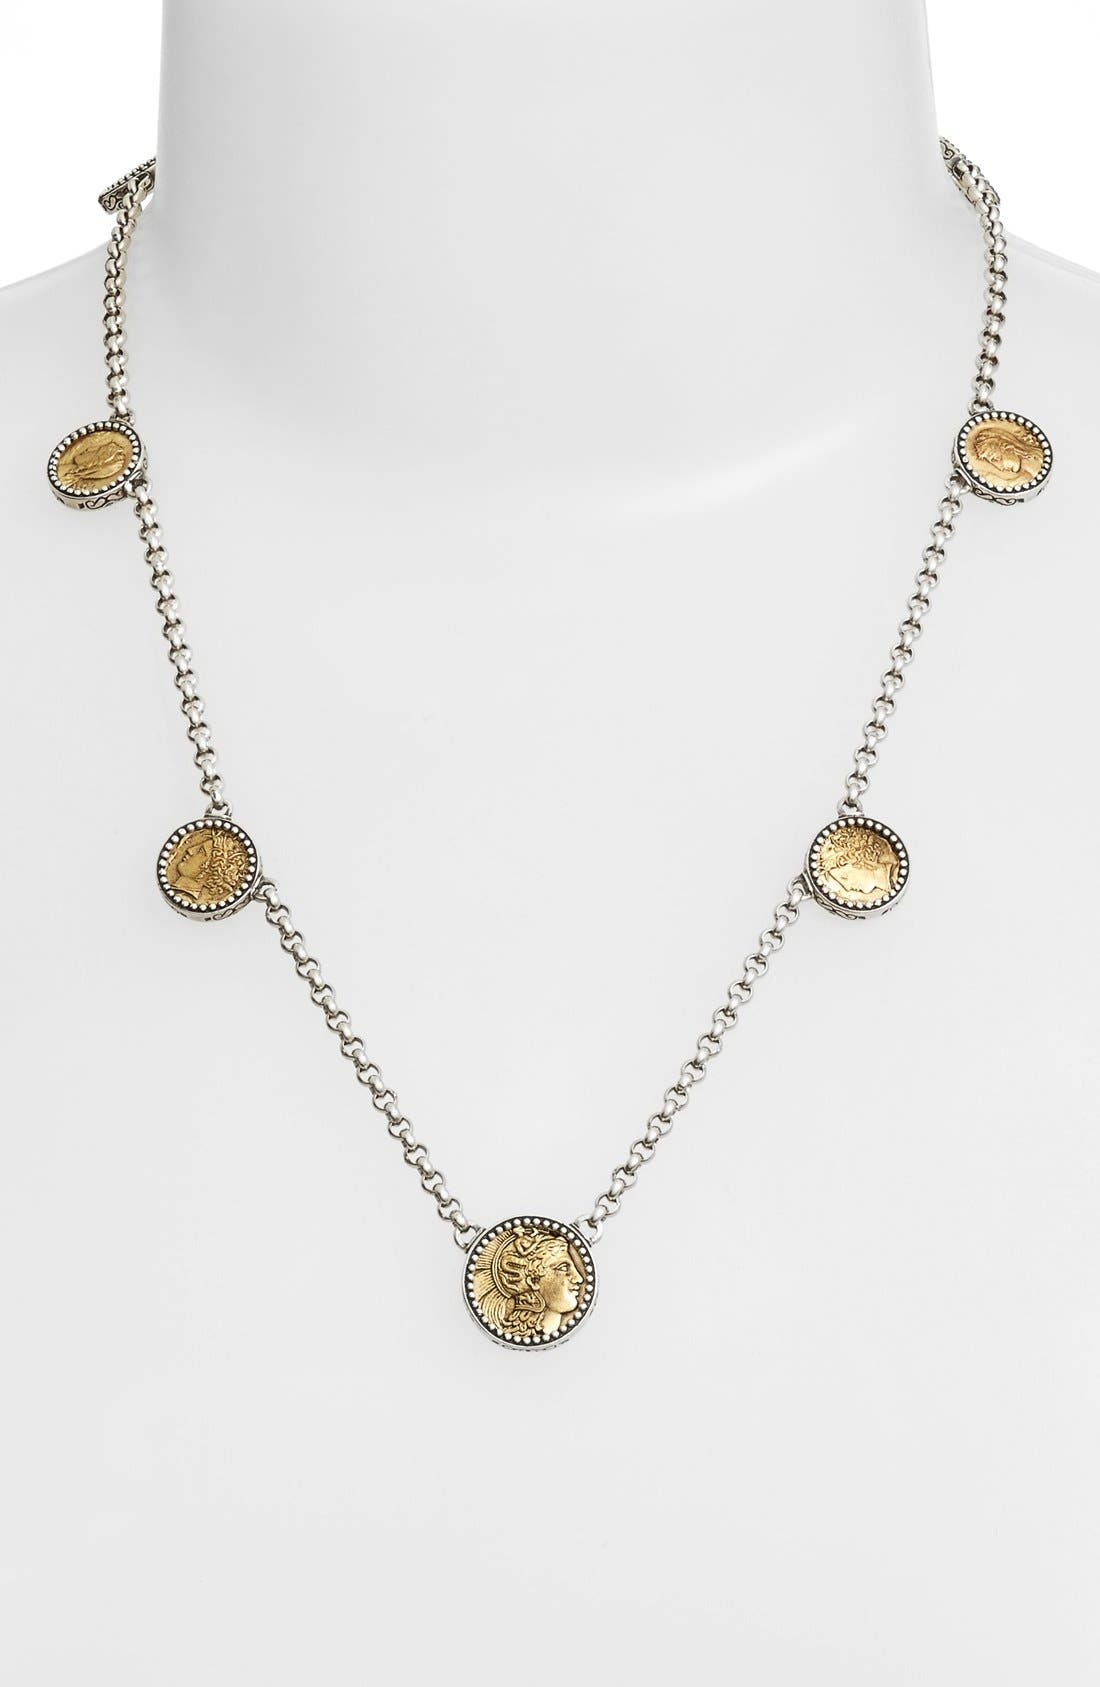 Main Image - Konstantino 'Goddess' Coin Necklace